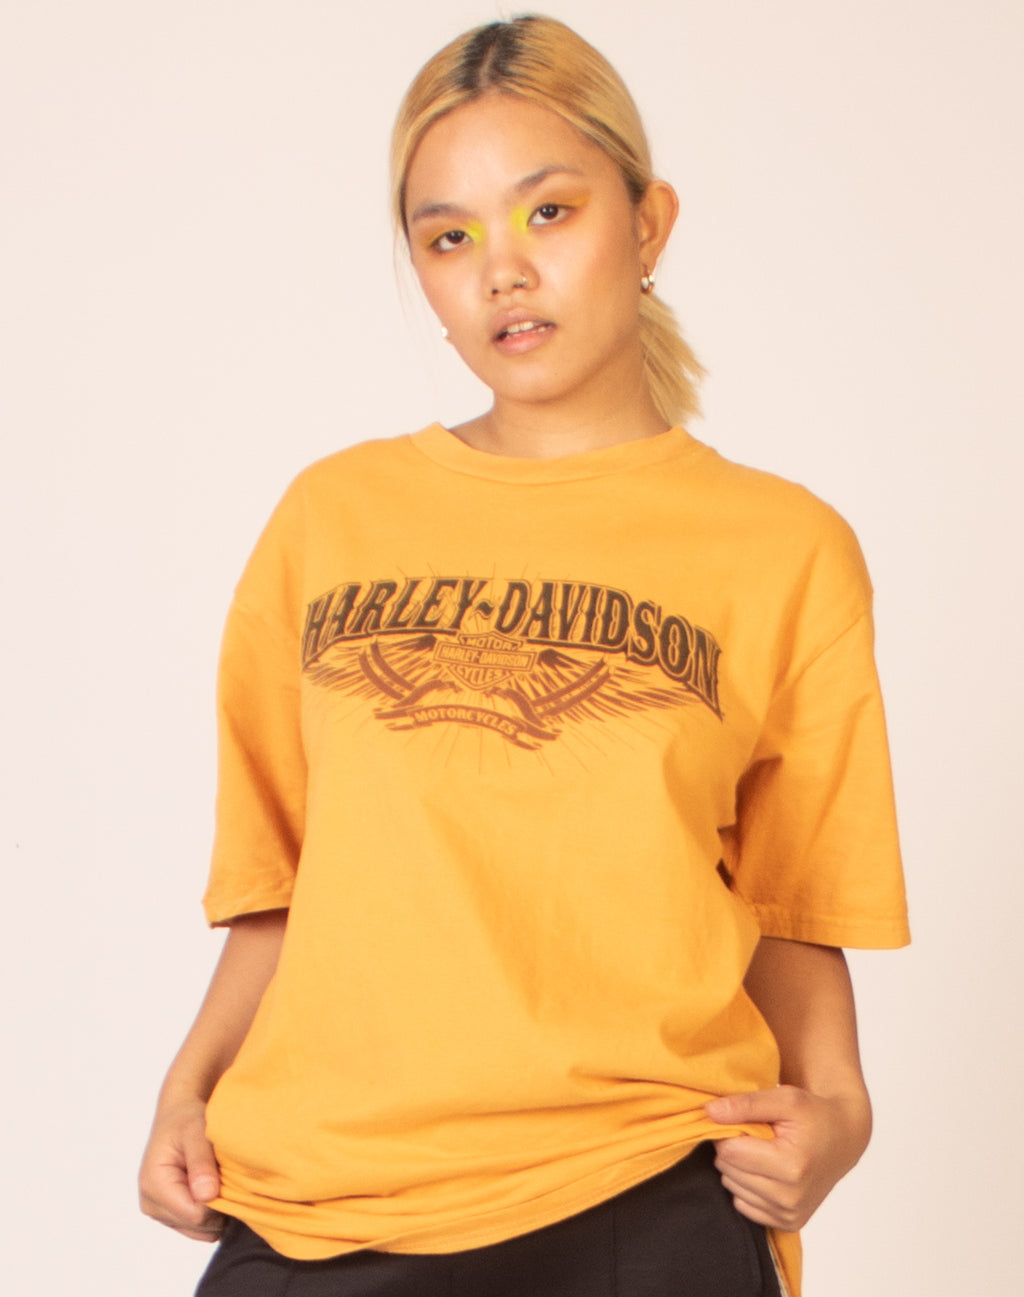 HARLEY DAVIDSON ORANGE T-SHIRT